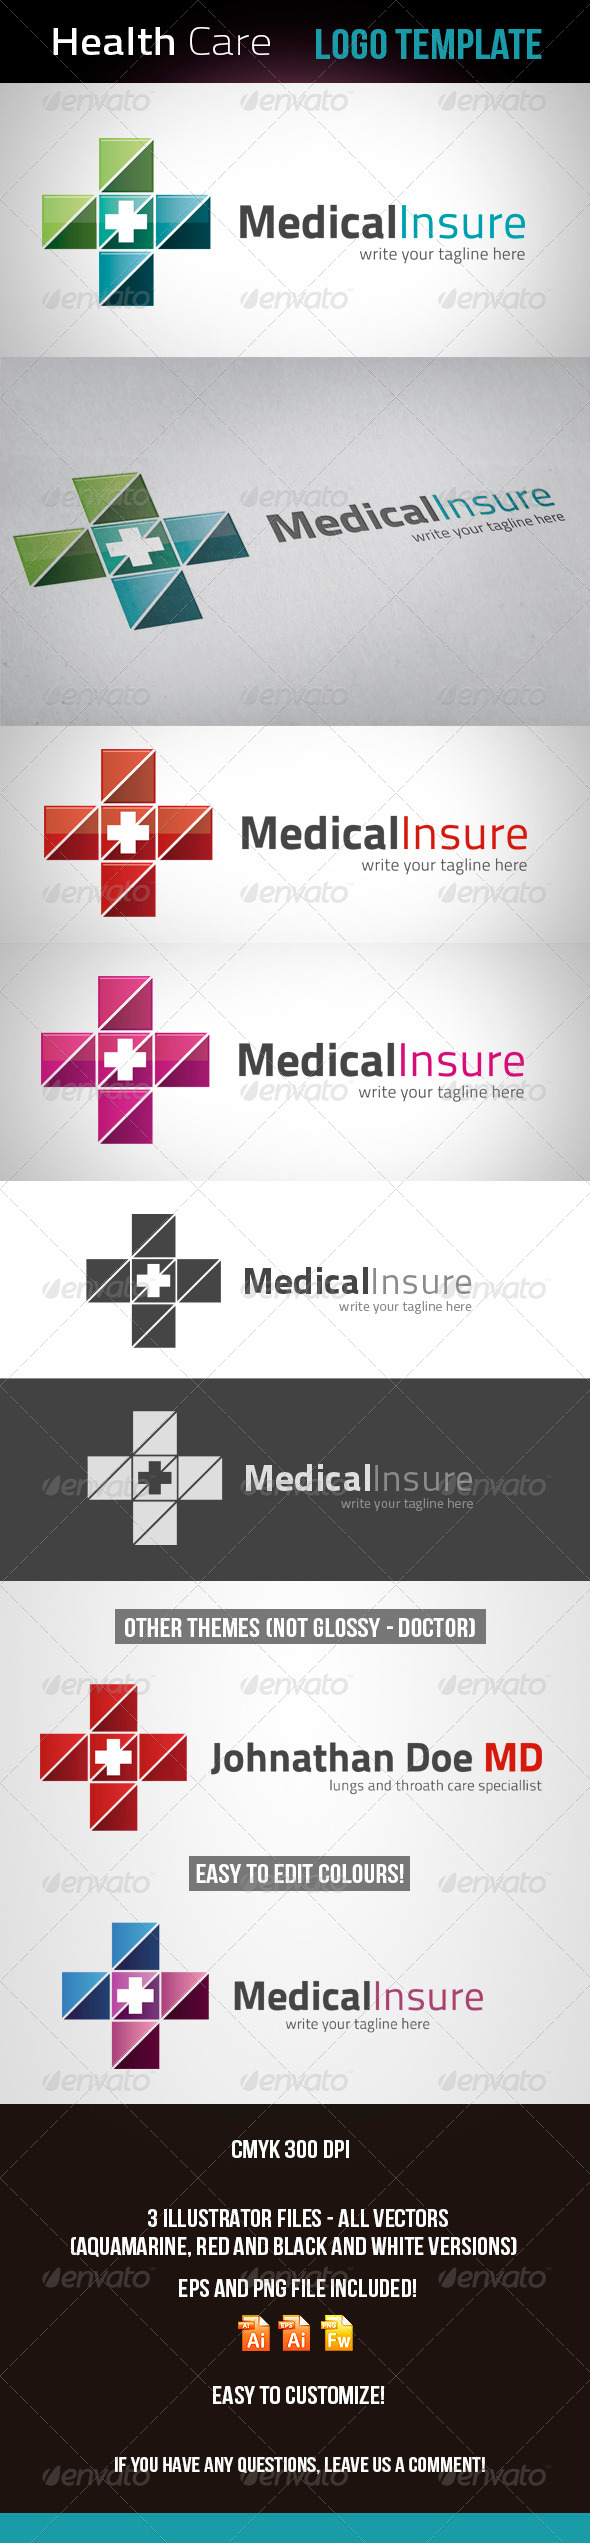 GraphicRiver Doctor Health Care Logo Template 5886621